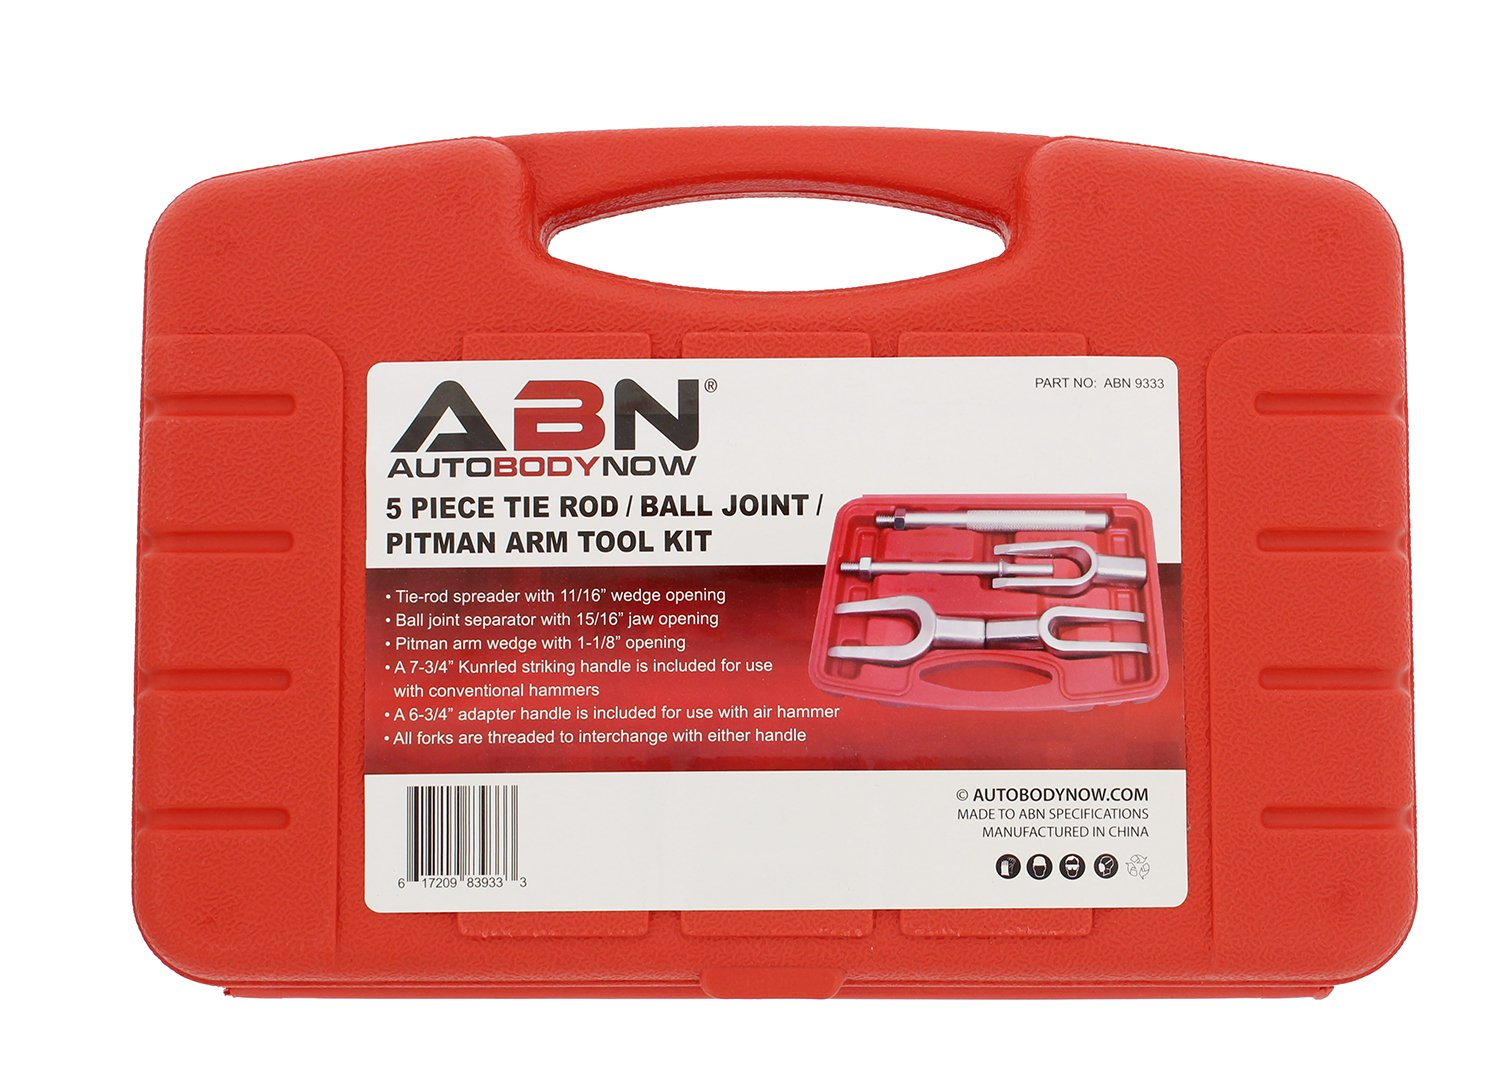 ABN Ball Joint Separator for Cars and Light Trucks and Pitman Arm 5-Piece Tool Kit Tie Rod